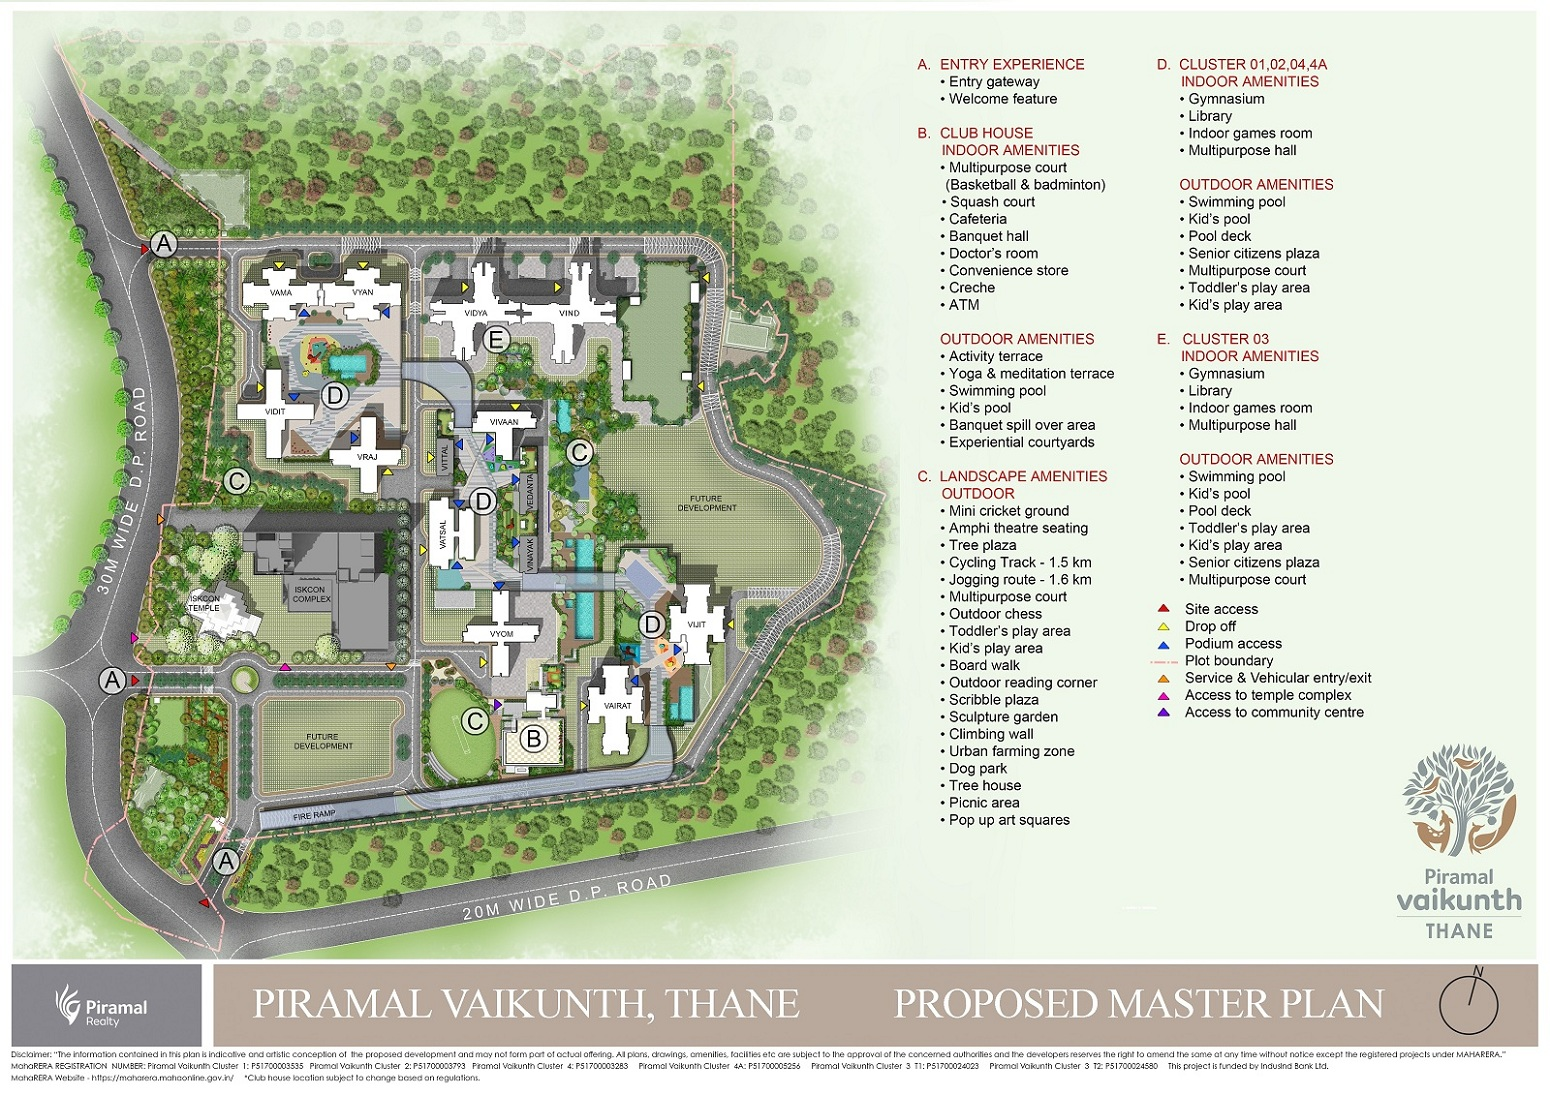 piramal vaikunth project master plan image1